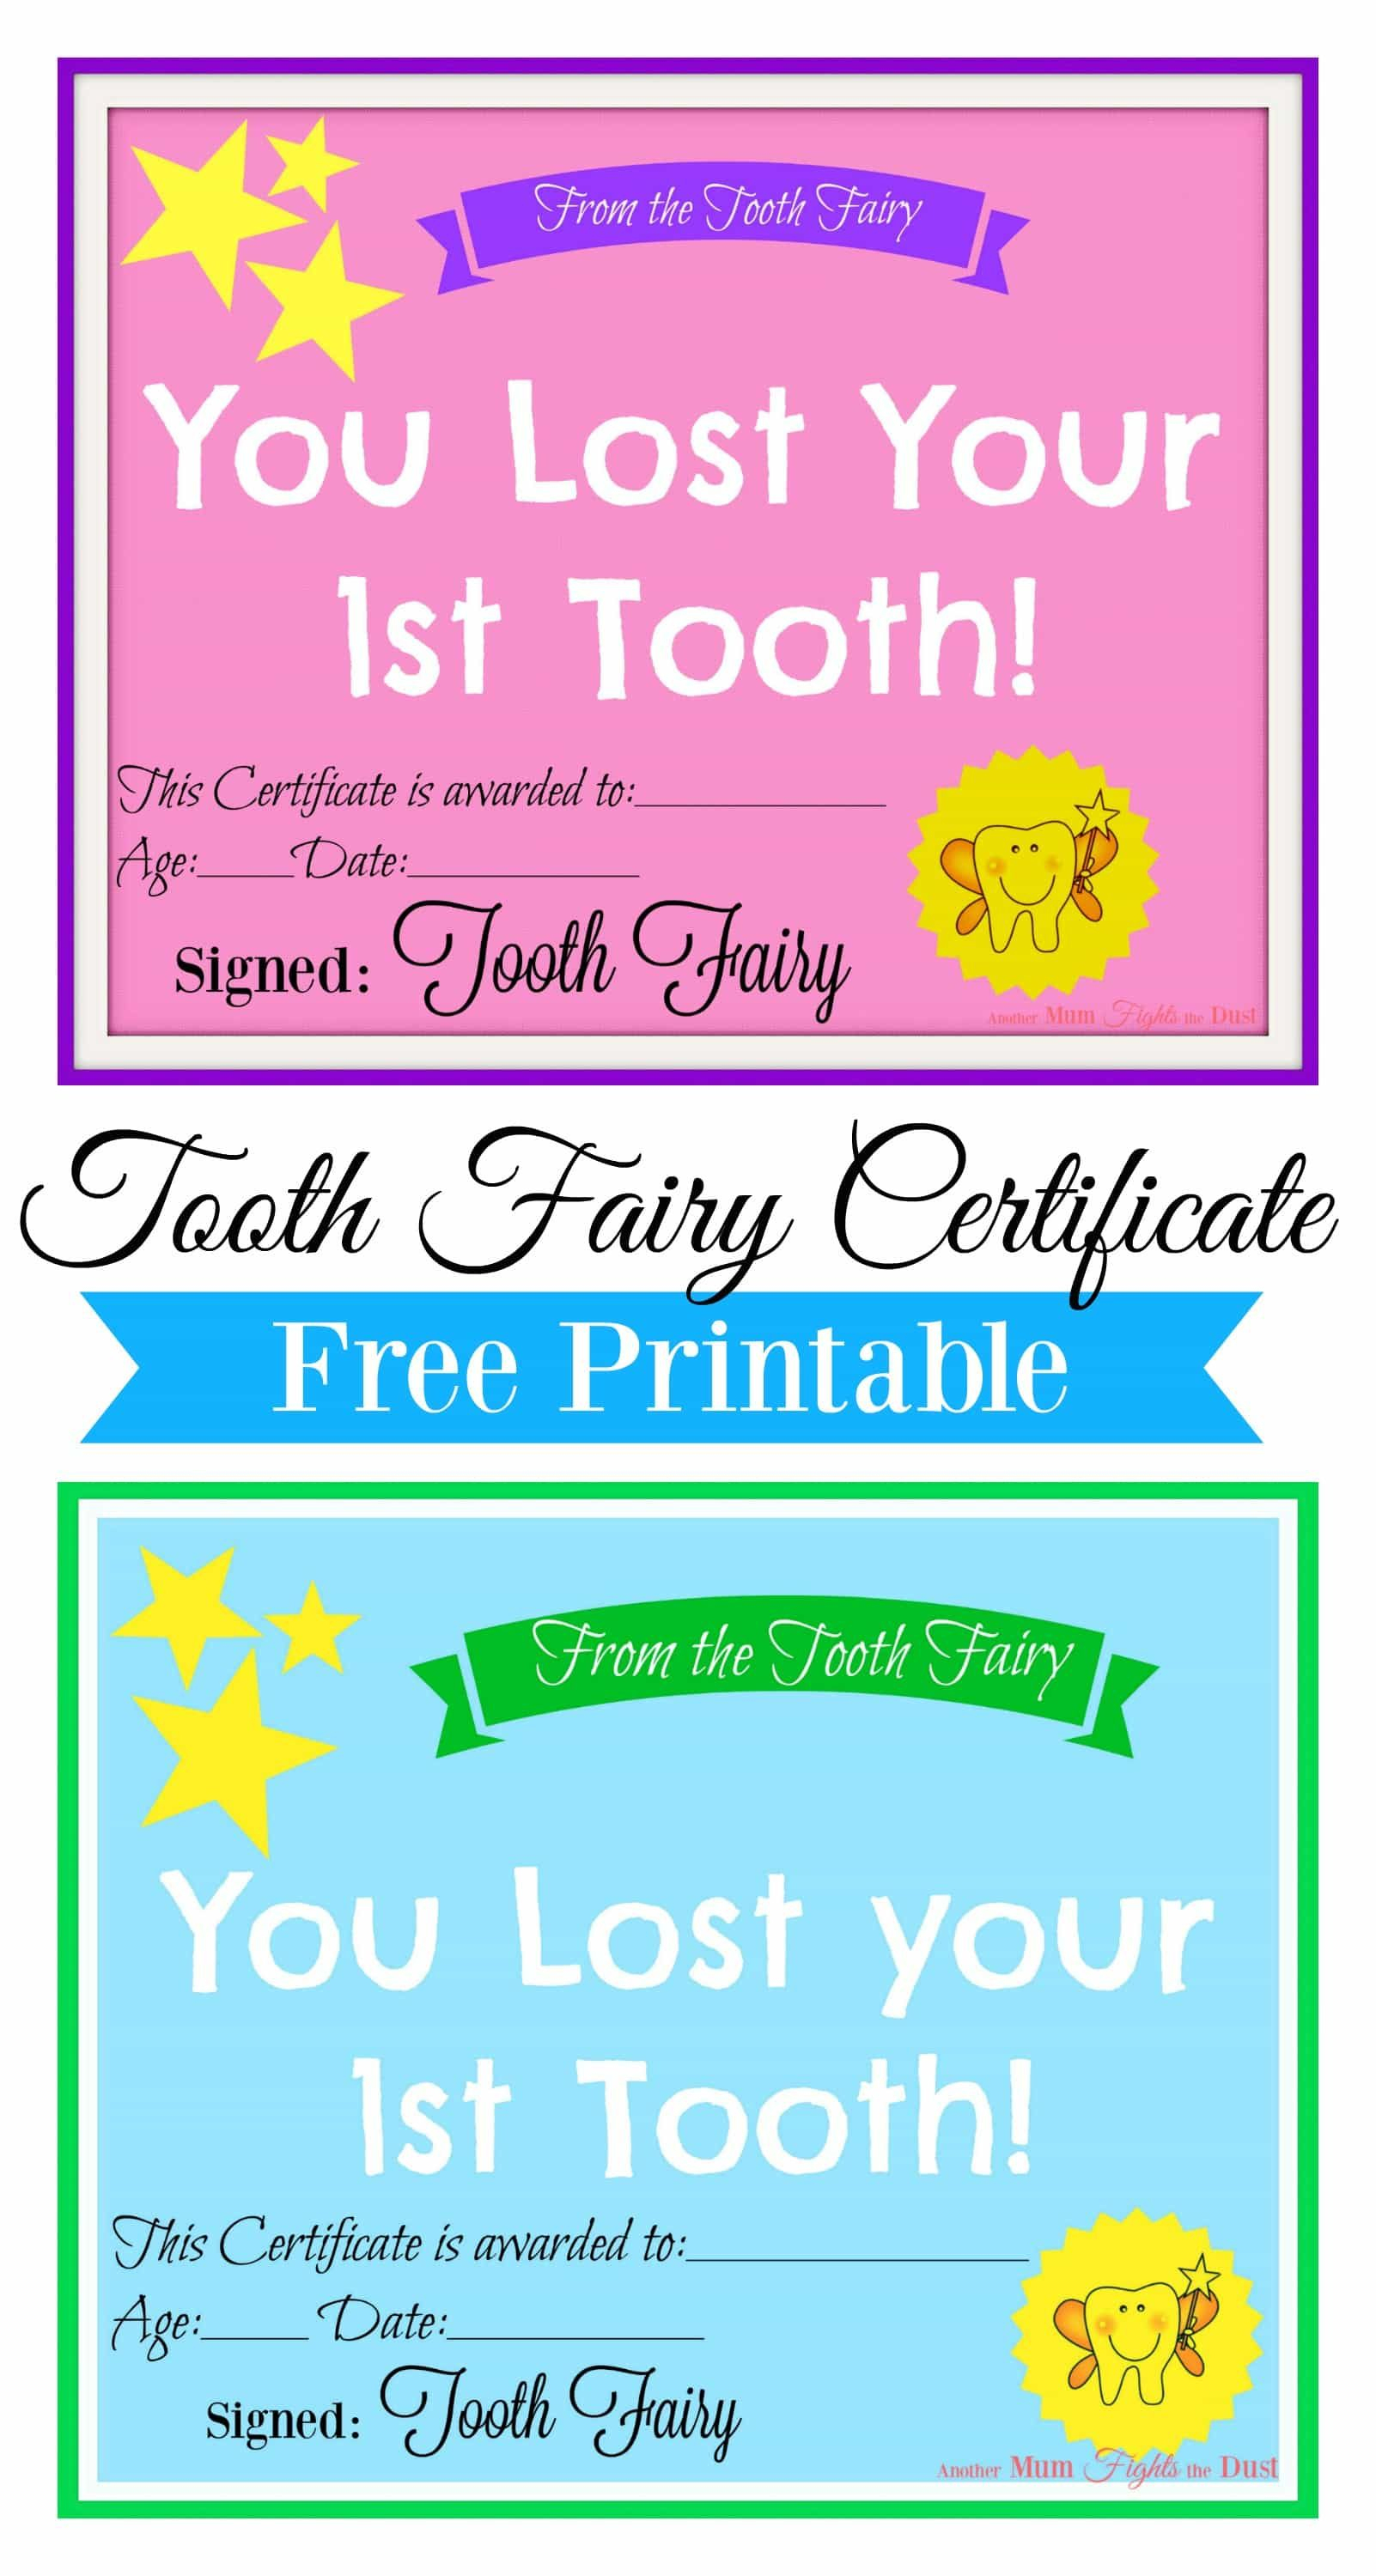 Free Printable Tooth Fairy Certificate | Tooth Fairy Ideas | Tooth - Tooth Fairy Stationery Free Printable